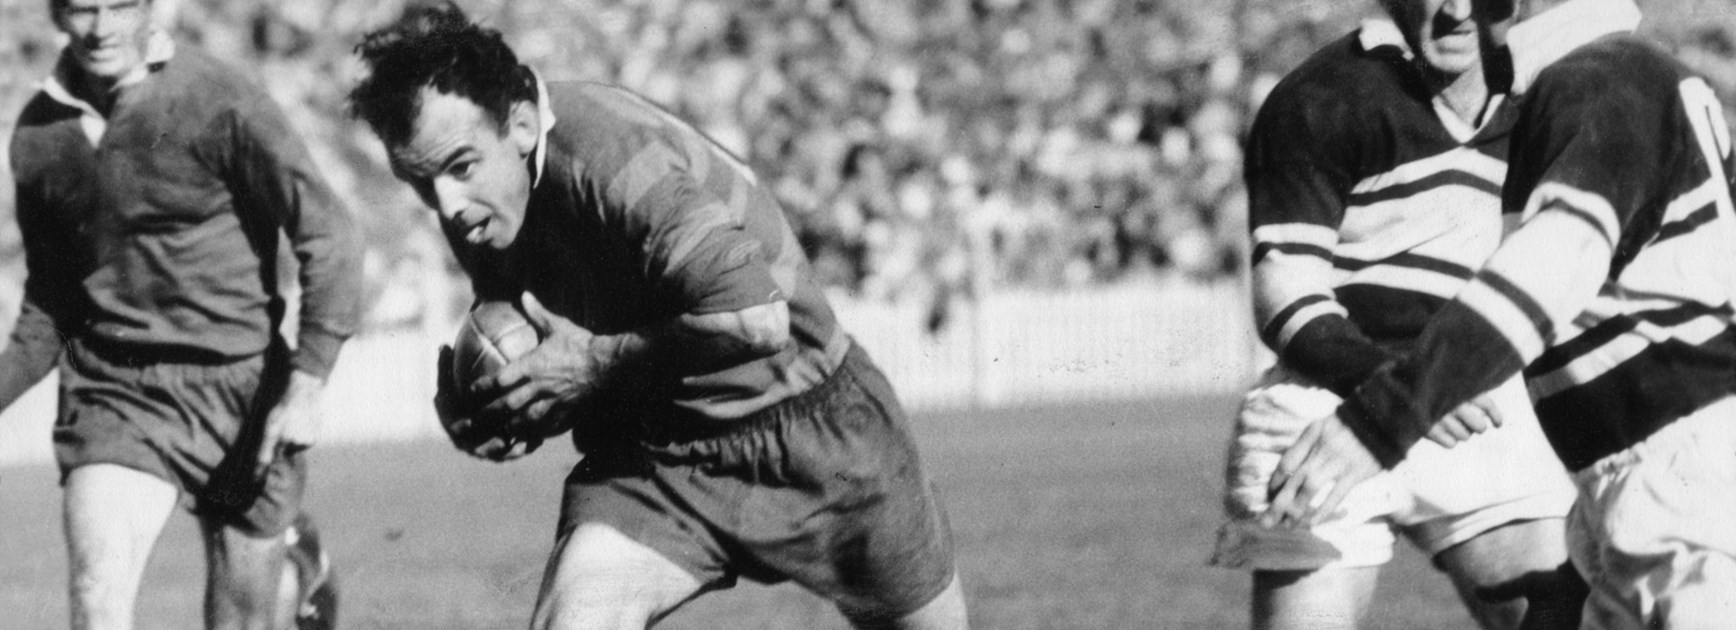 Clive Churchill playing for Souths against Wests in the 1950s.